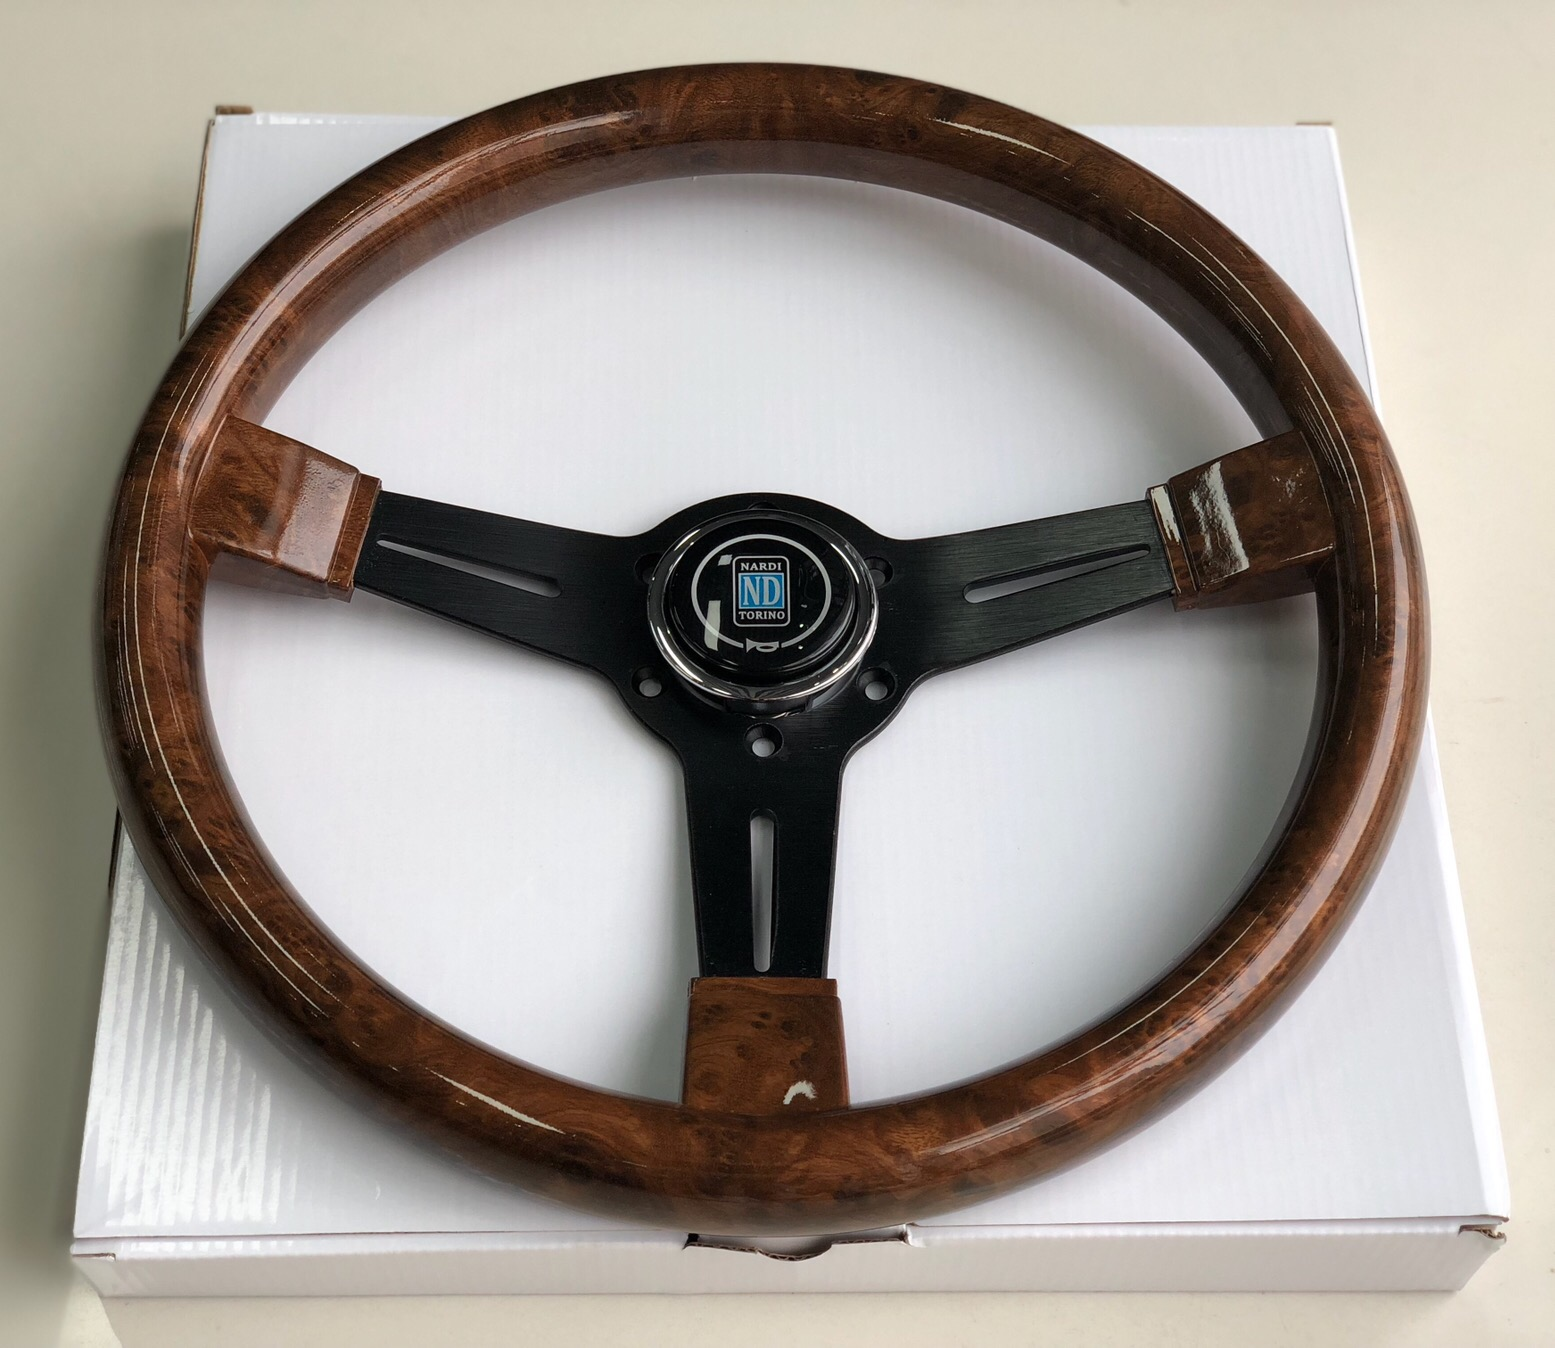 Italy ND 14inch Wooden Look Steering Wheel Drift Sport Steering Wheels title=